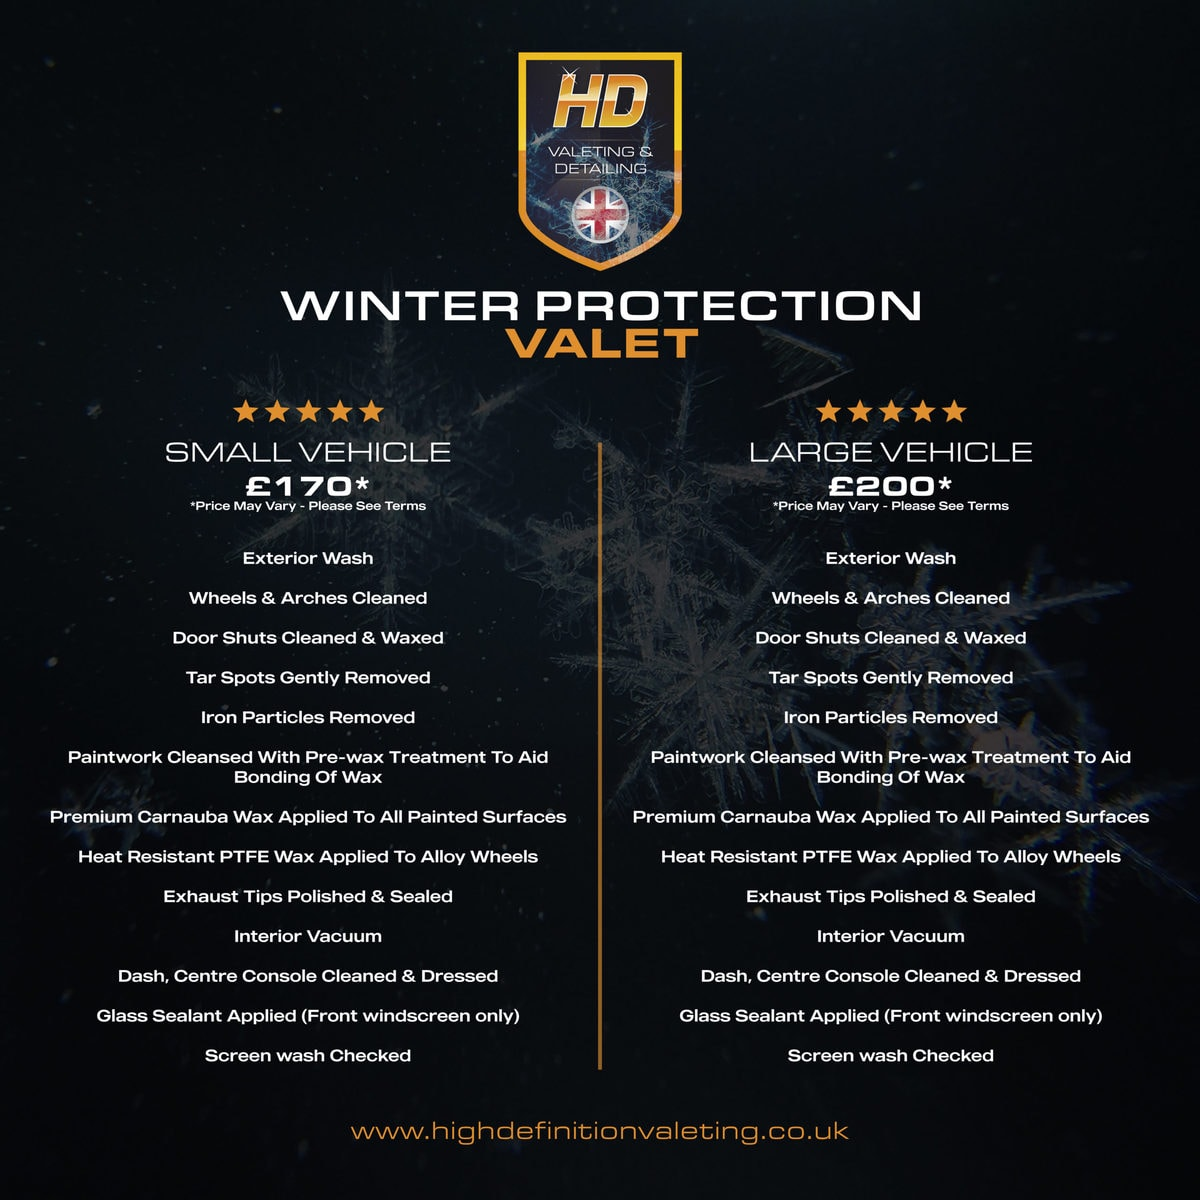 WINTER PROTECTION AD copy